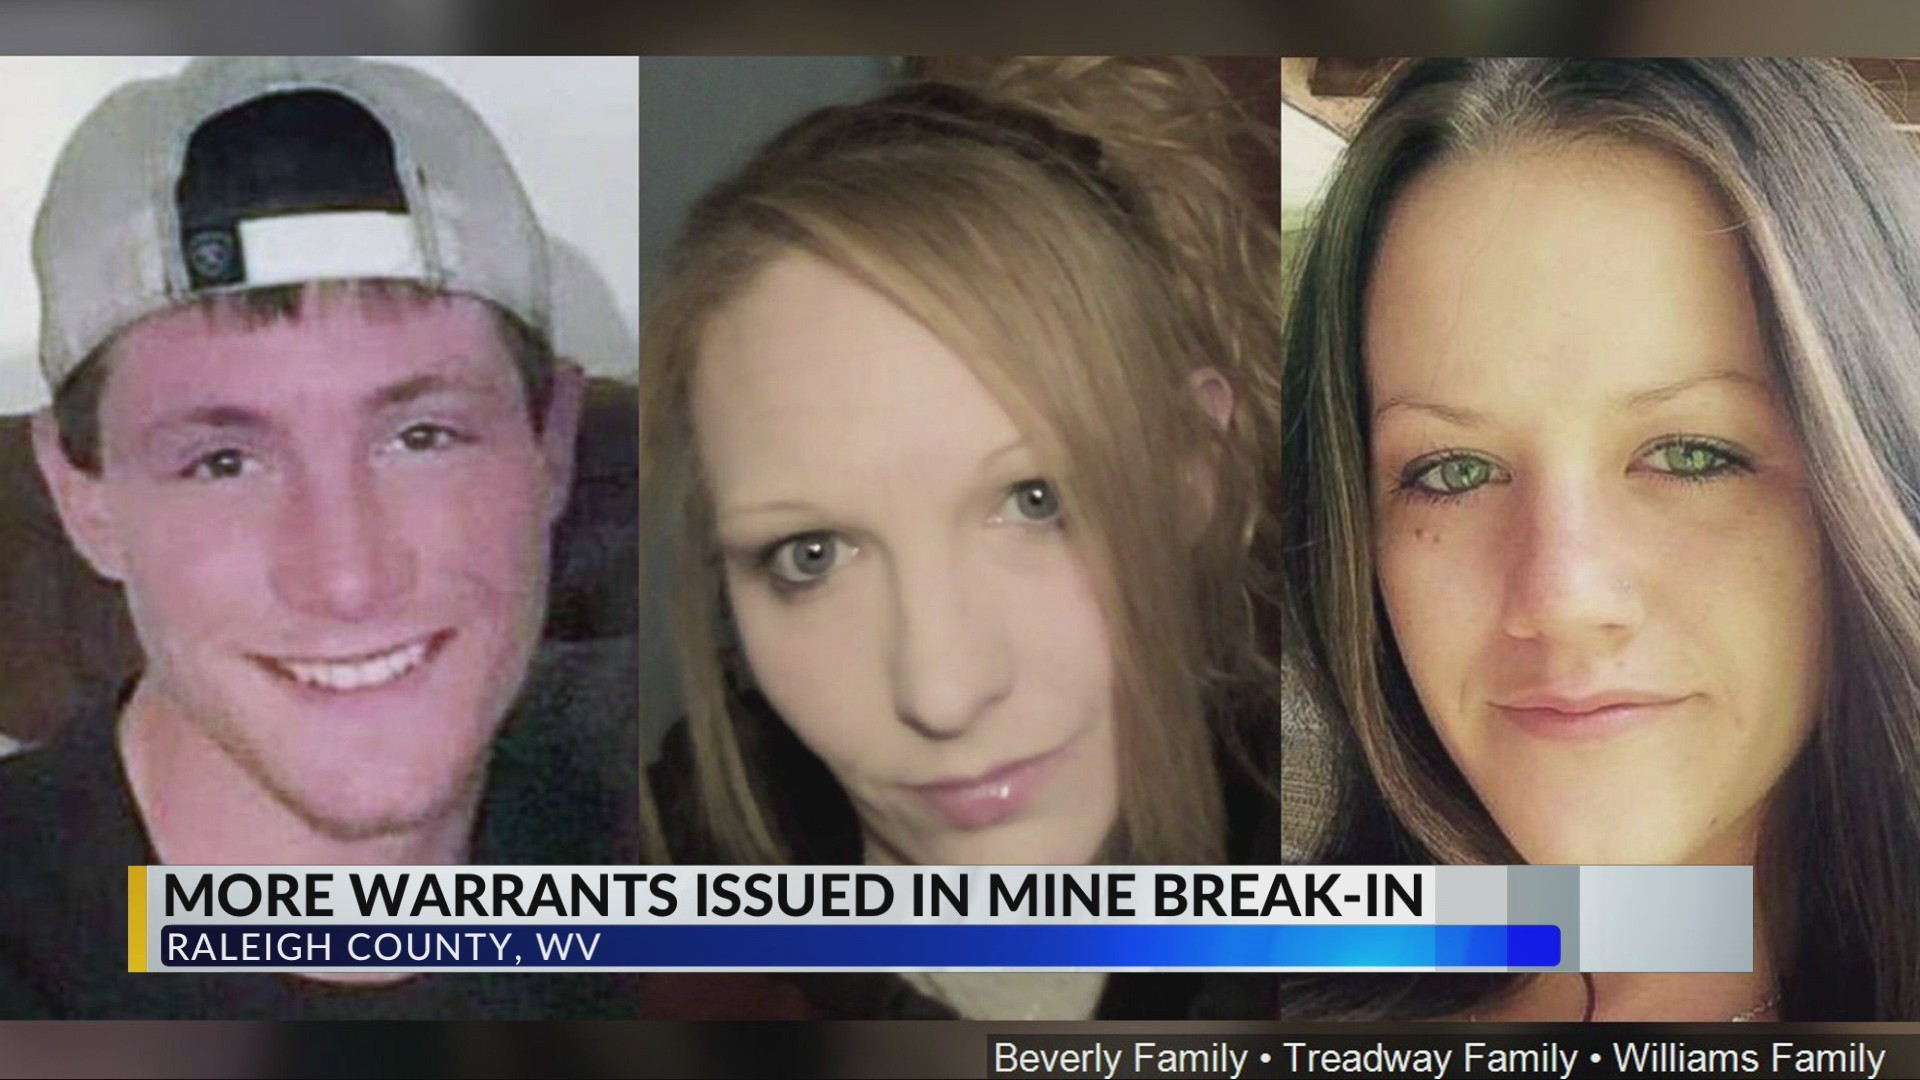 3 More Warrants Issued in Raleigh County Mine Break-In